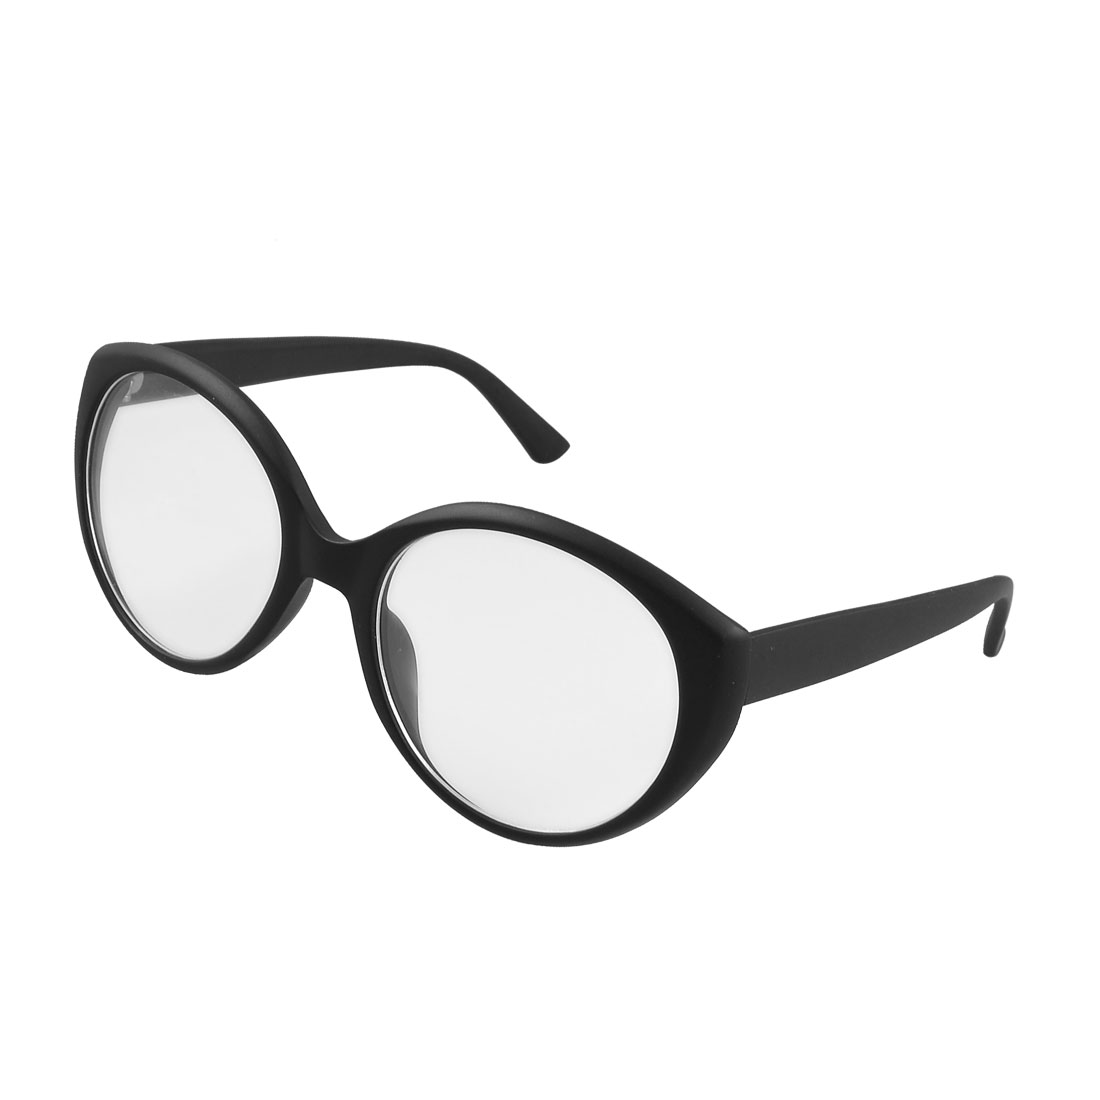 Black Plastic Arms Full Frame Round Clear Lens Glasses Spectacles for Women